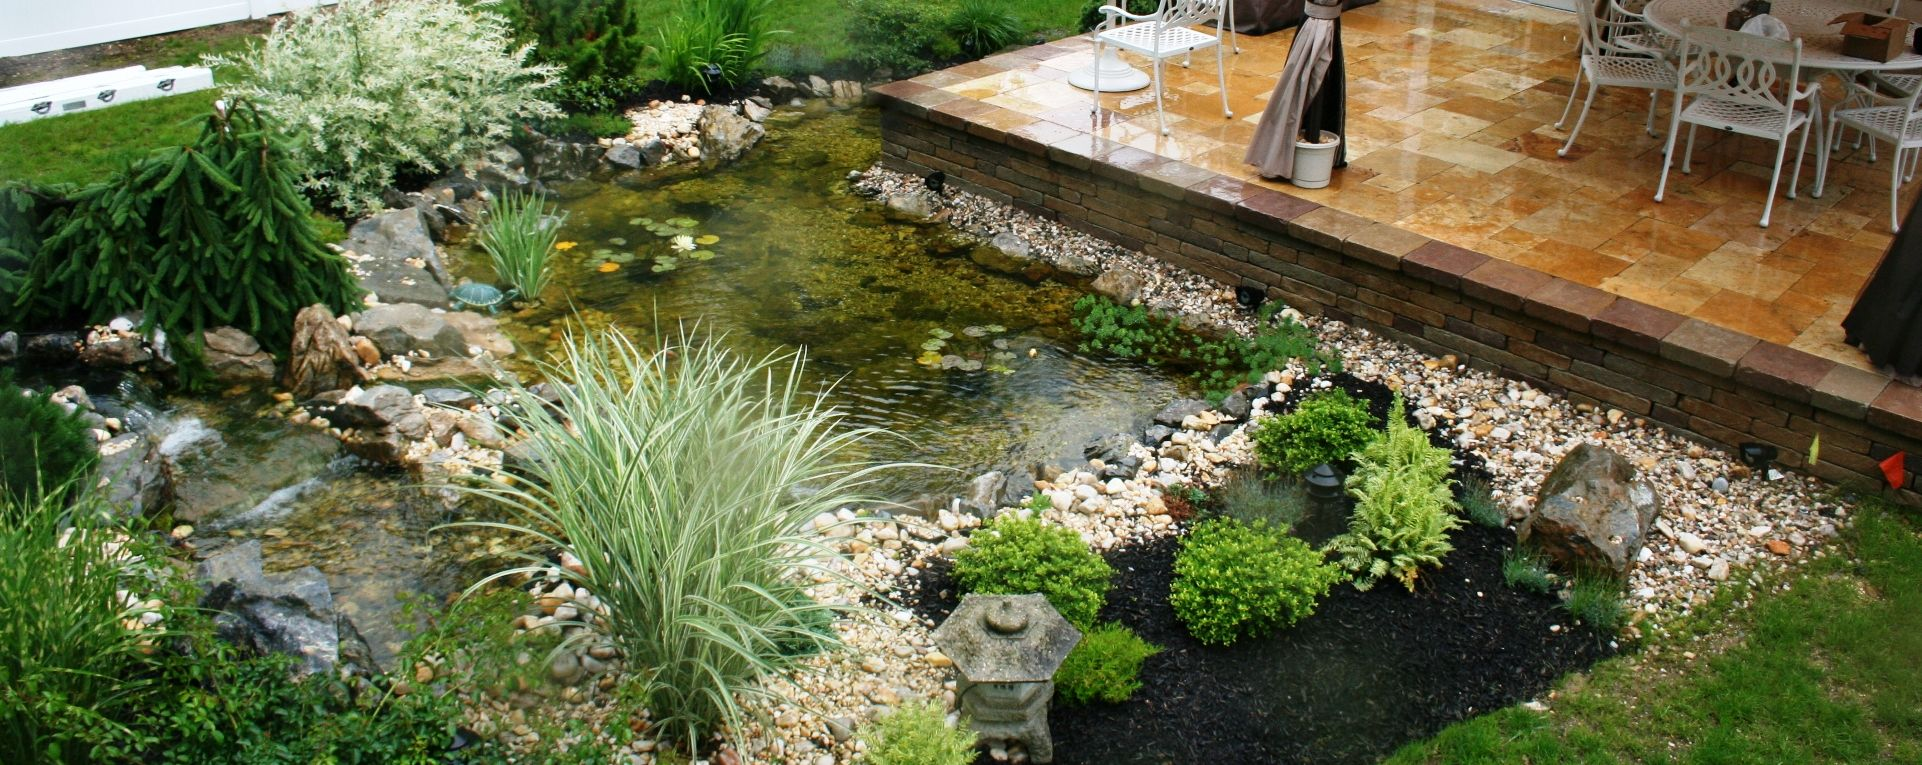 Landscape design long island ny landscaping companies for Fish pond design